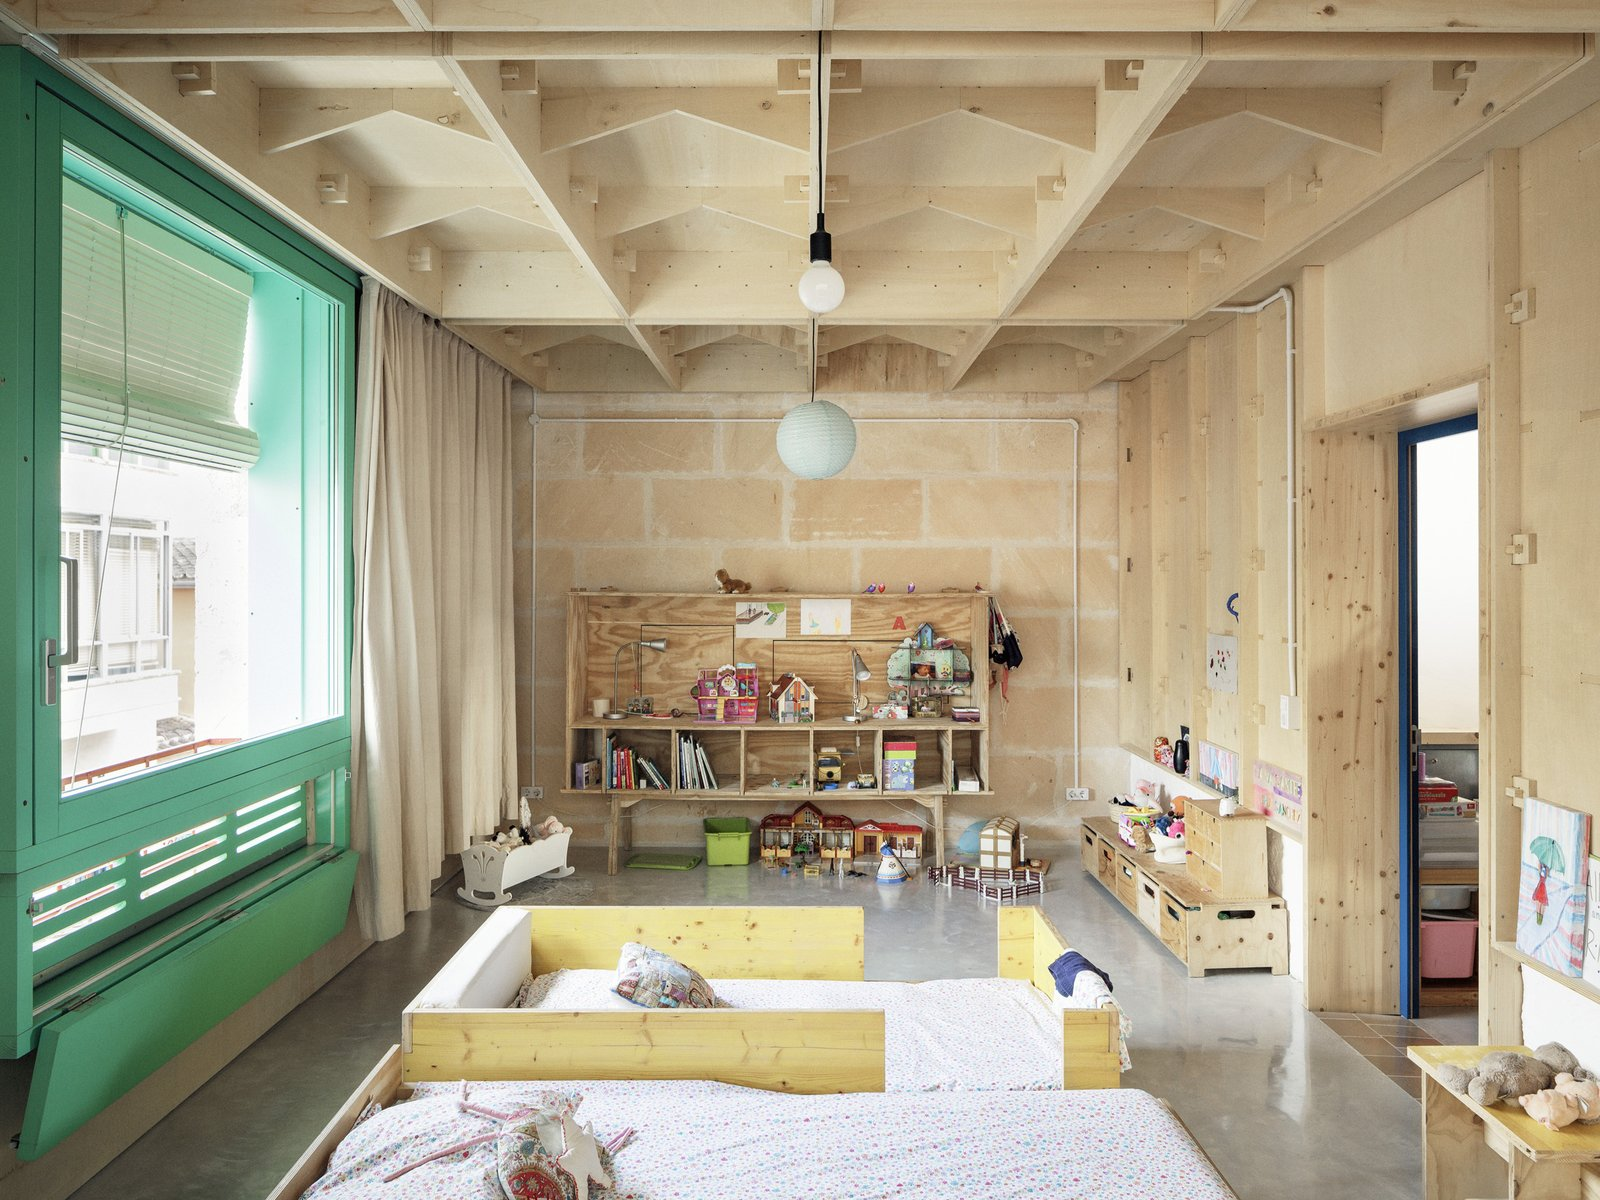 Kids Room, Toddler Age, Bedroom Room Type, Shelves, Bed, Bookcase, Neutral Gender, Concrete Floor, and Storage The children's bedroom and play area.  Photo 15 of 19 in A Luminous Plywood Addition Crowns This Mallorca Townhouse